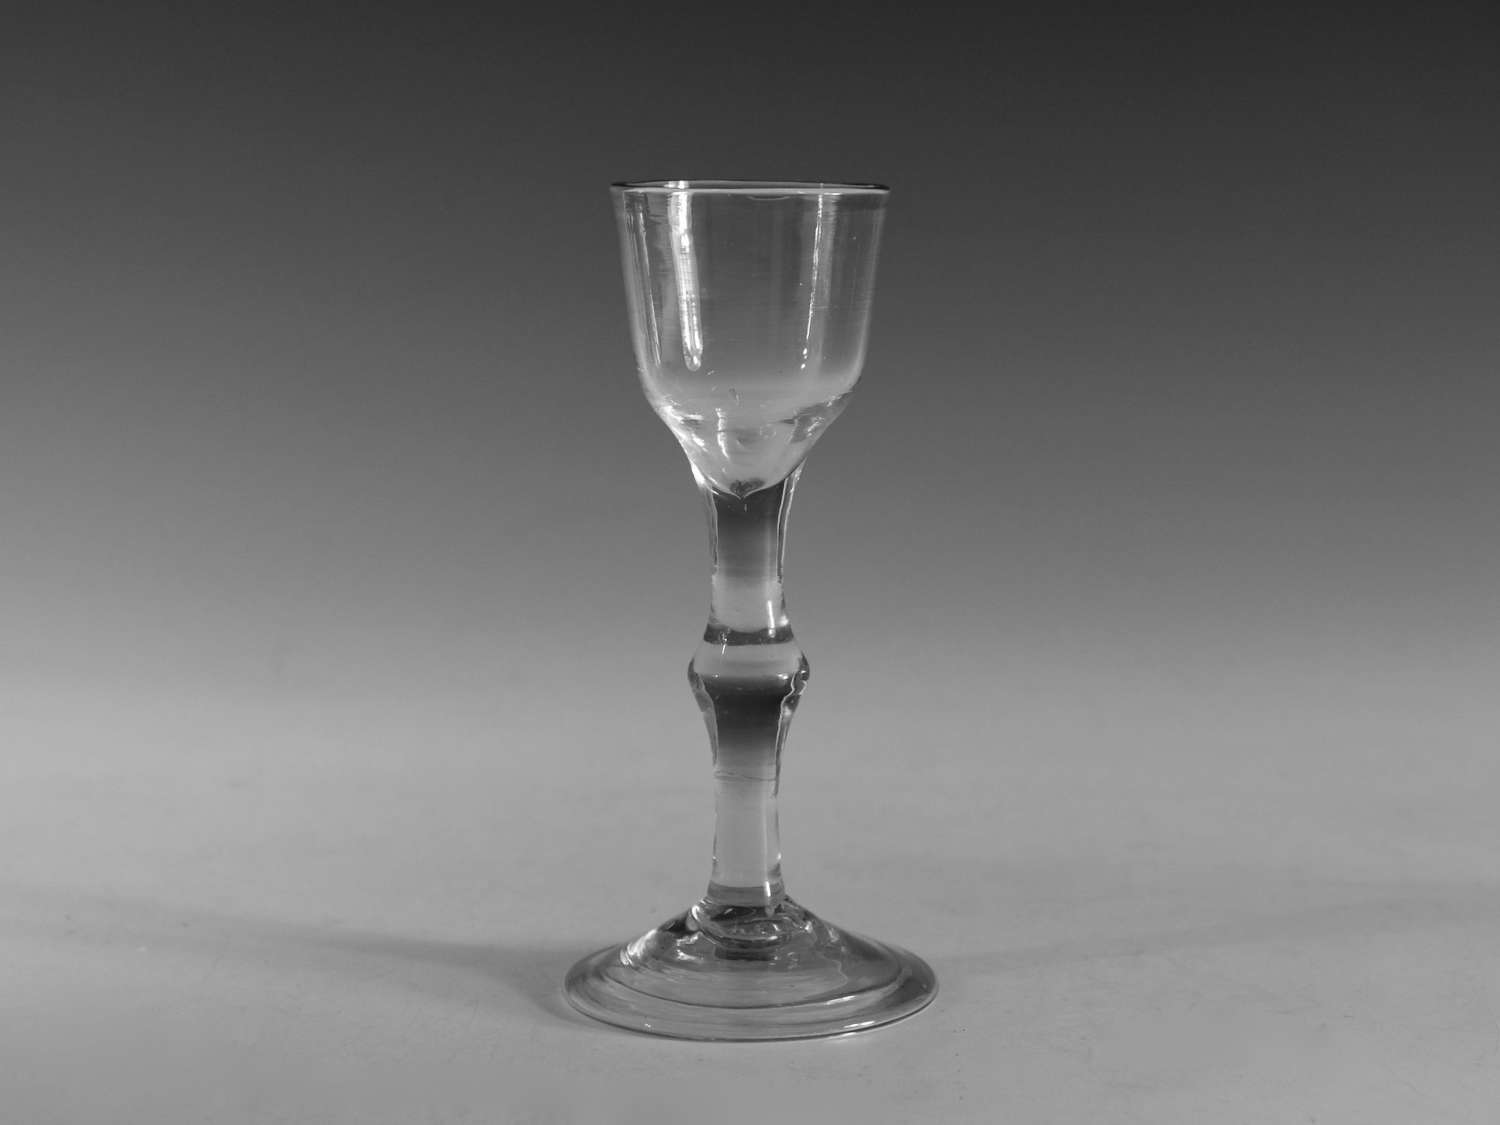 Antique wine glass balustroid English c1750